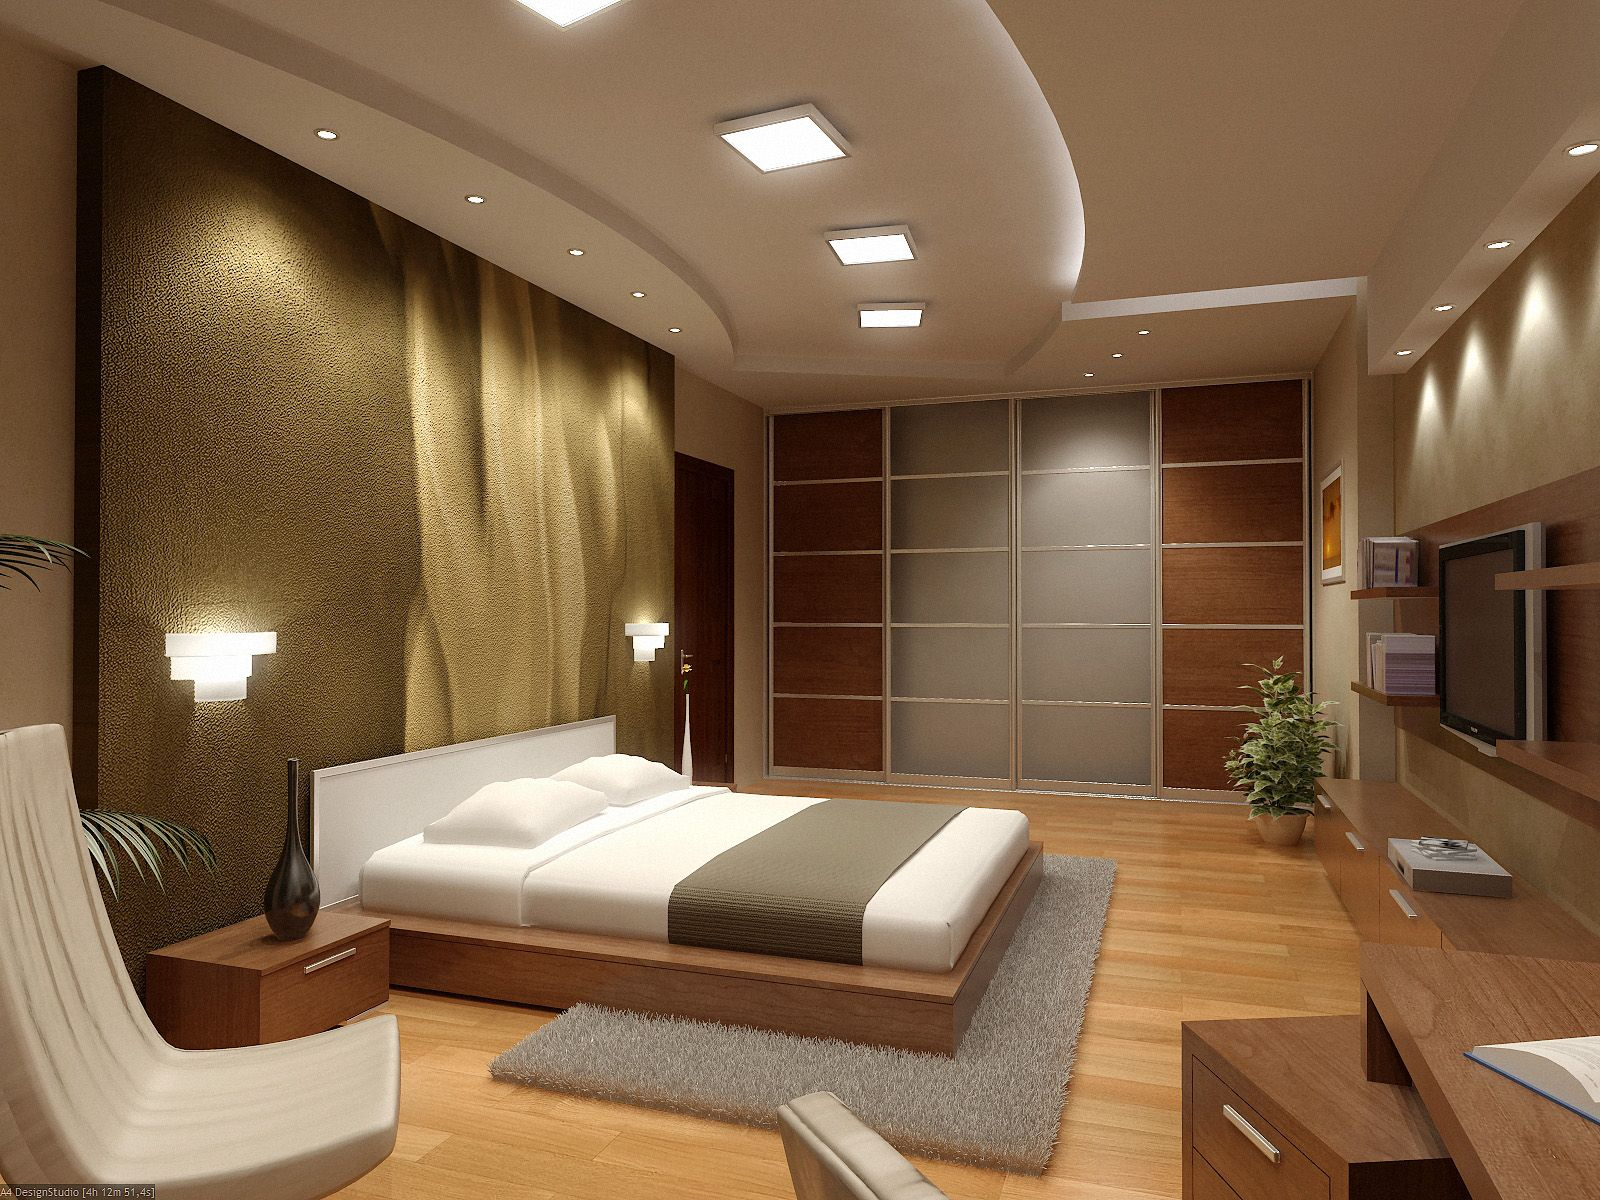 New home designs latest modern homes luxury interior for Modern house interior design bedroom